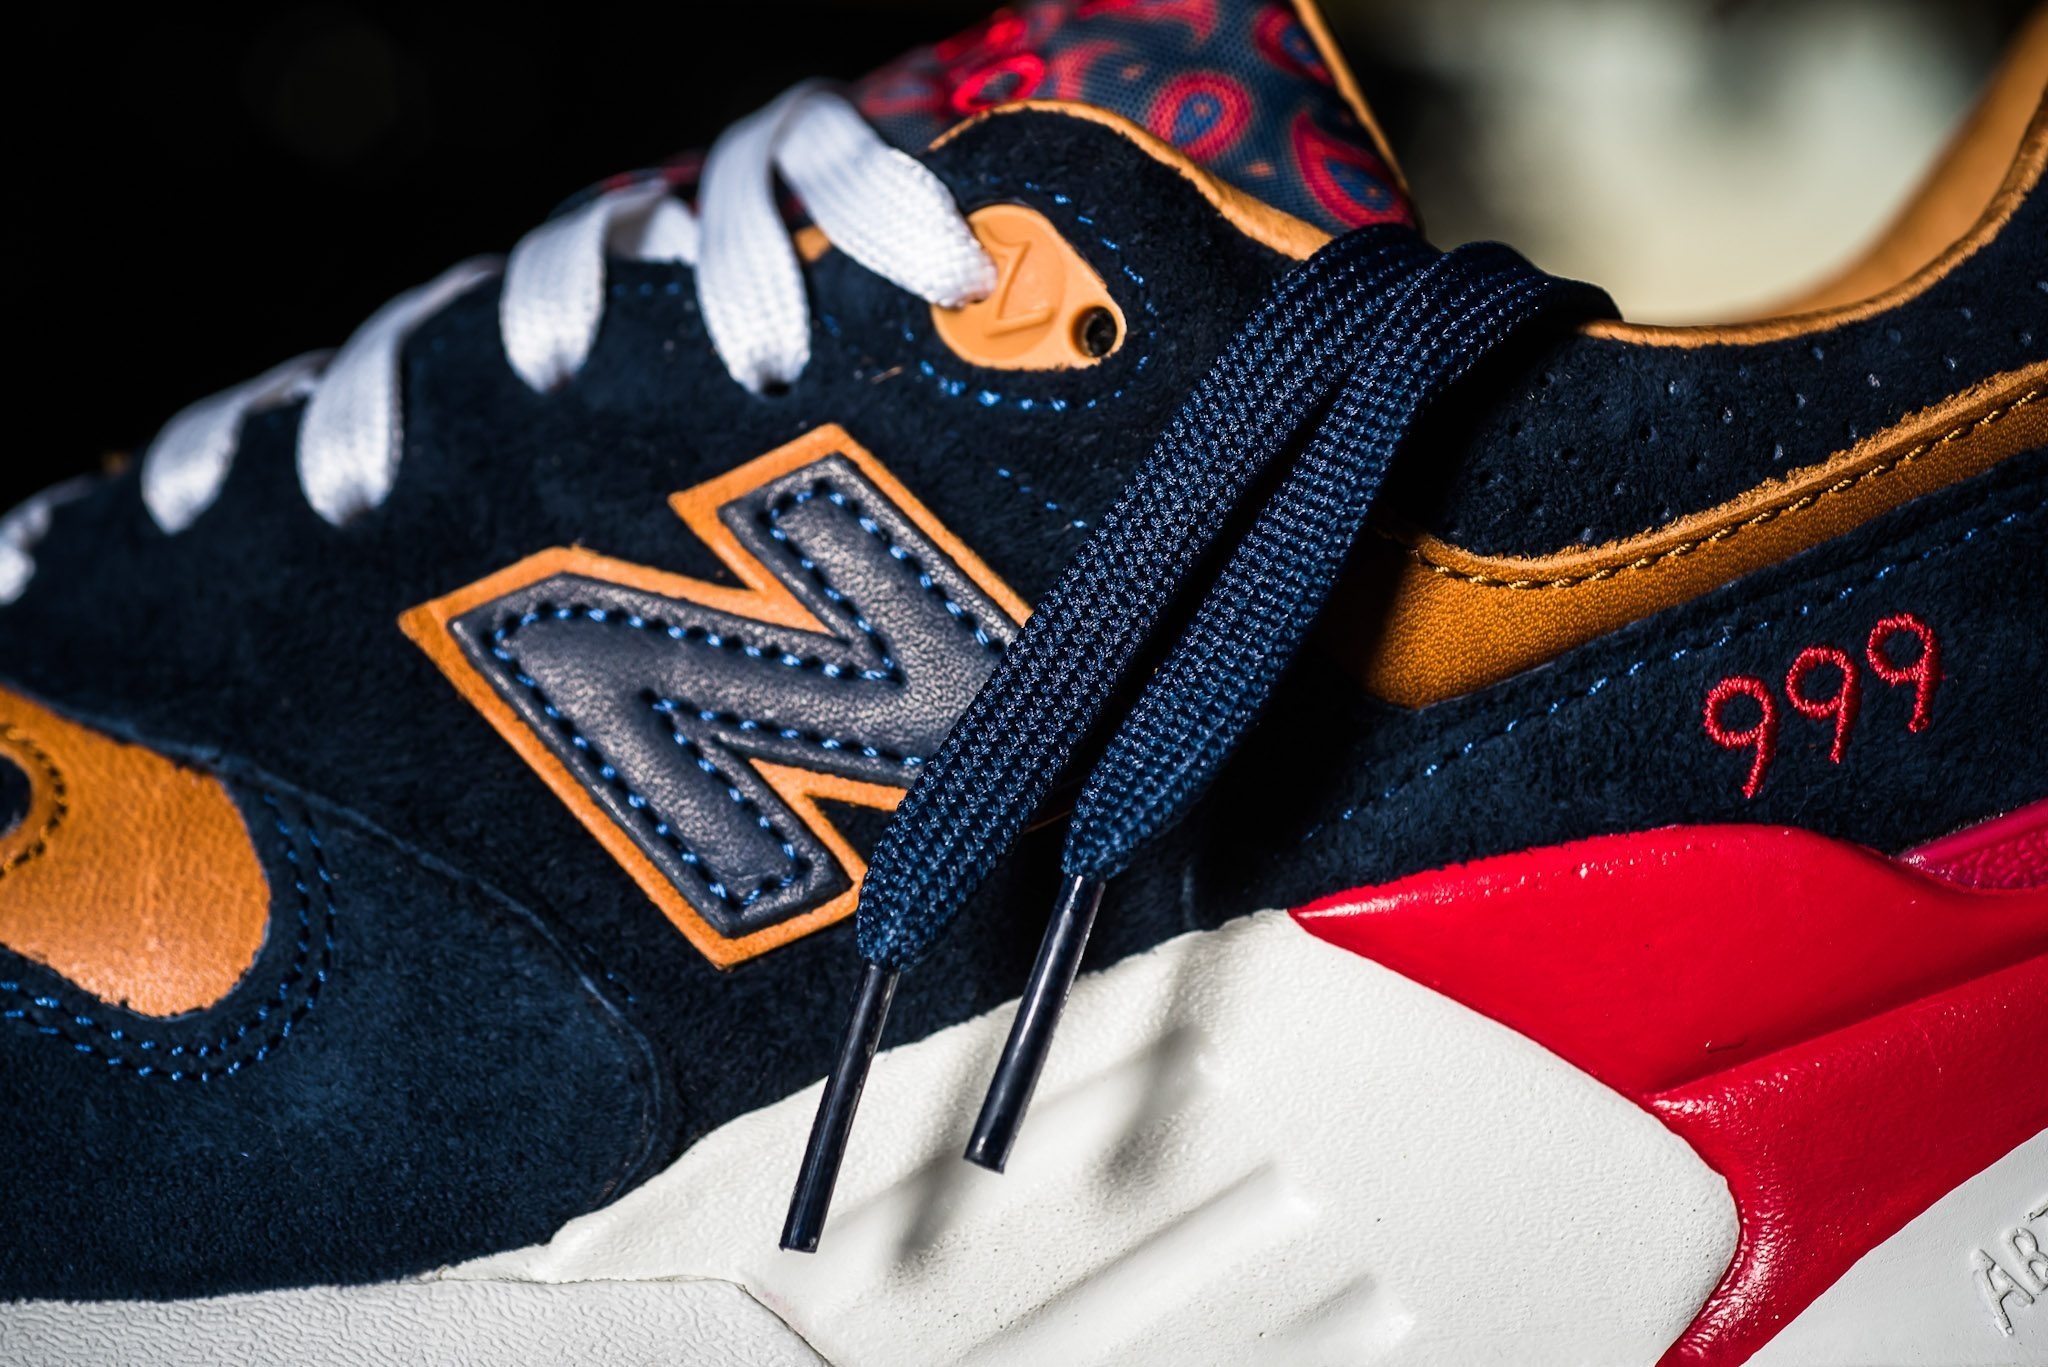 Sneaker Politics x New Balance Case 999 6